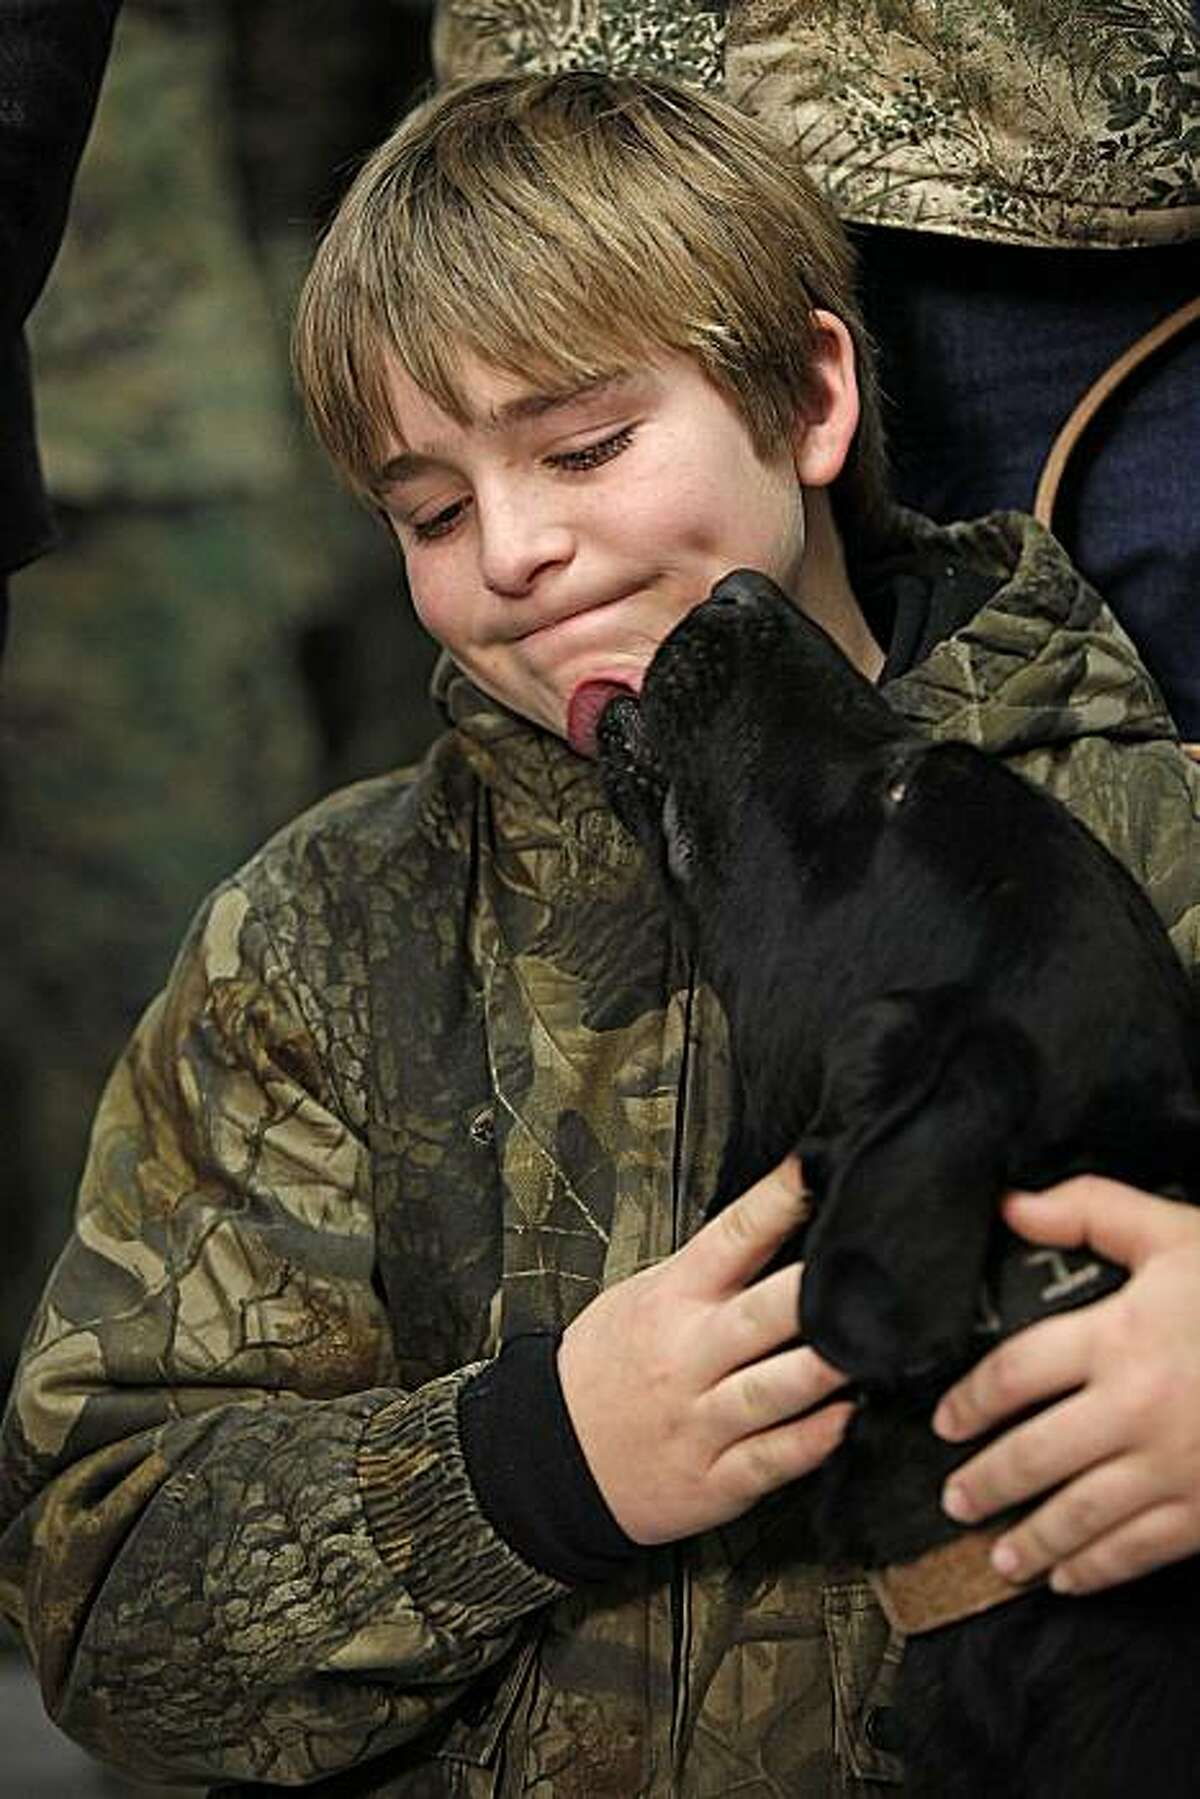 Bomb-sniffing Labrador, Eli, licks Brady Rusk, 12, during an adoption ceremony at Lackland Air Force Base in San Antonio, Thursday, Feb. 3, 2011. . Rusk brother, U.S. Marine Pfc. Colton W. Rusk, was Eli's handler. Eli, a bomb-sniffing Labrador whose handler was killed in combat has new owners _ the family of the fallen U.S. Marine who the dog loyally obeyed in Afghanistan. (AP Photo/San Antonio Express-News, Jerry Lara) RUMBO DE SAN ANTONIO OUT; NO SALES; MAGS OUT